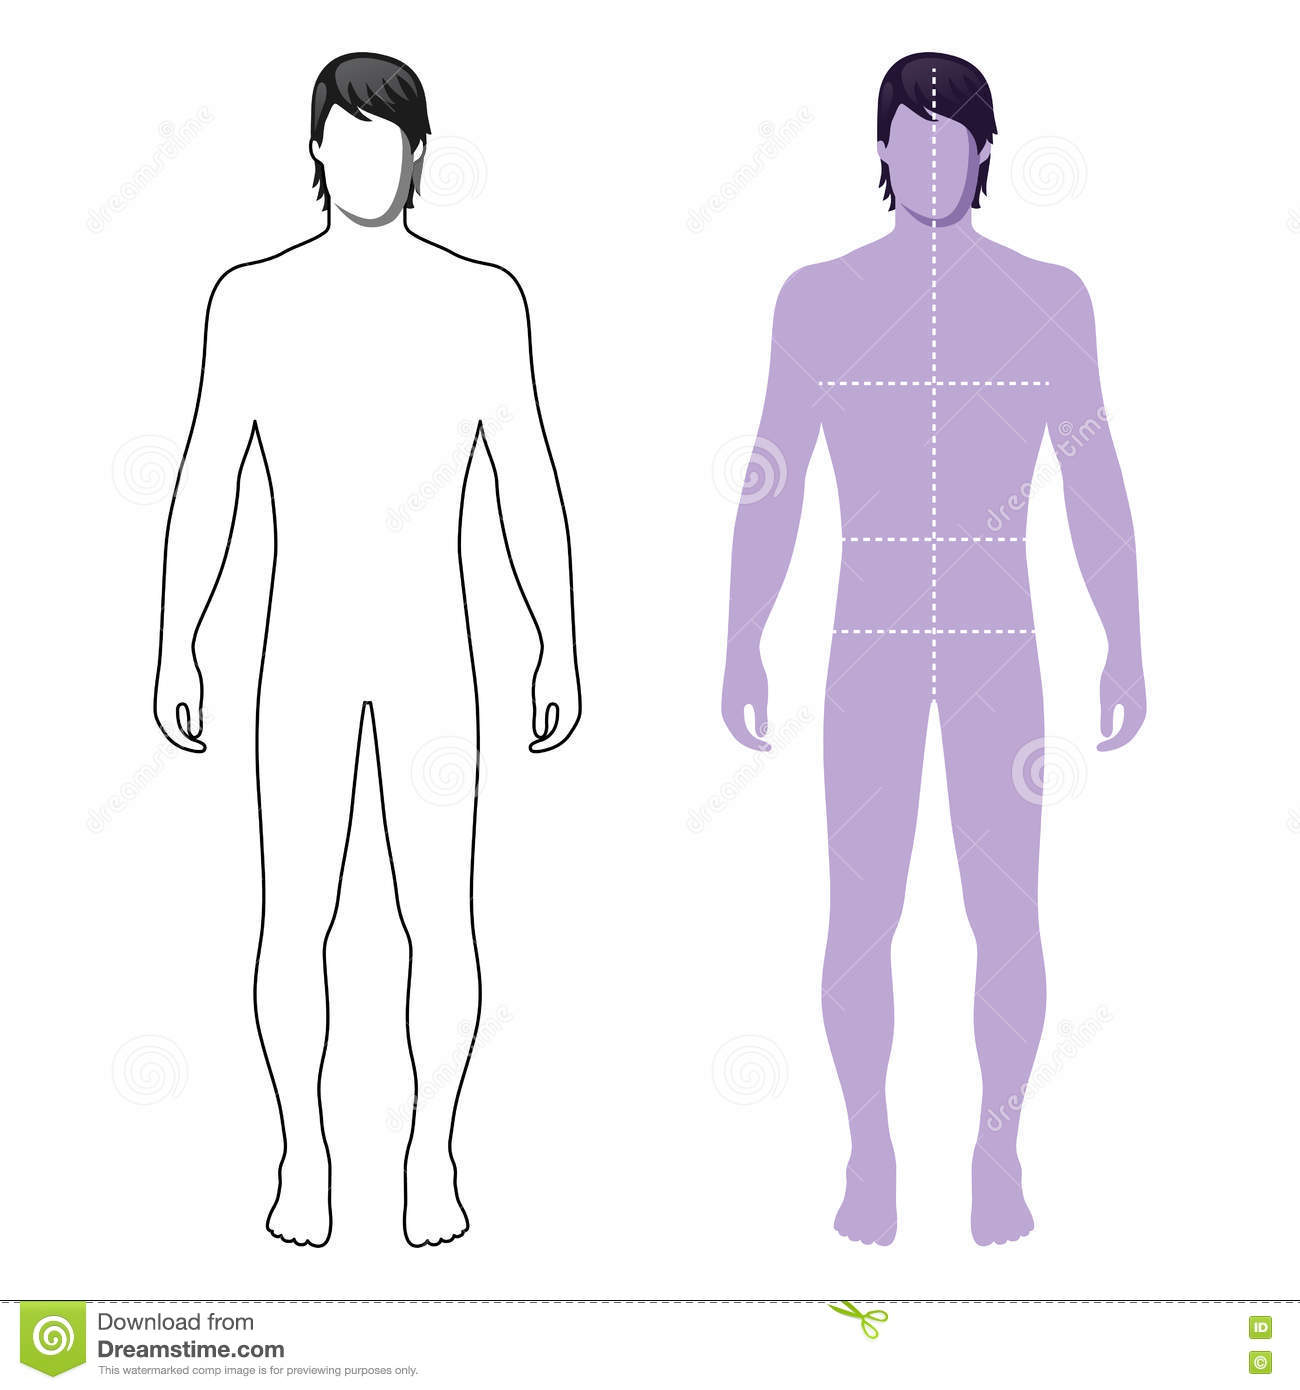 Fashion Man Full Length Outlined Template Figure Silhouette With Marked Bodys Sizes Lines Front View Illustration Isolated On White Background